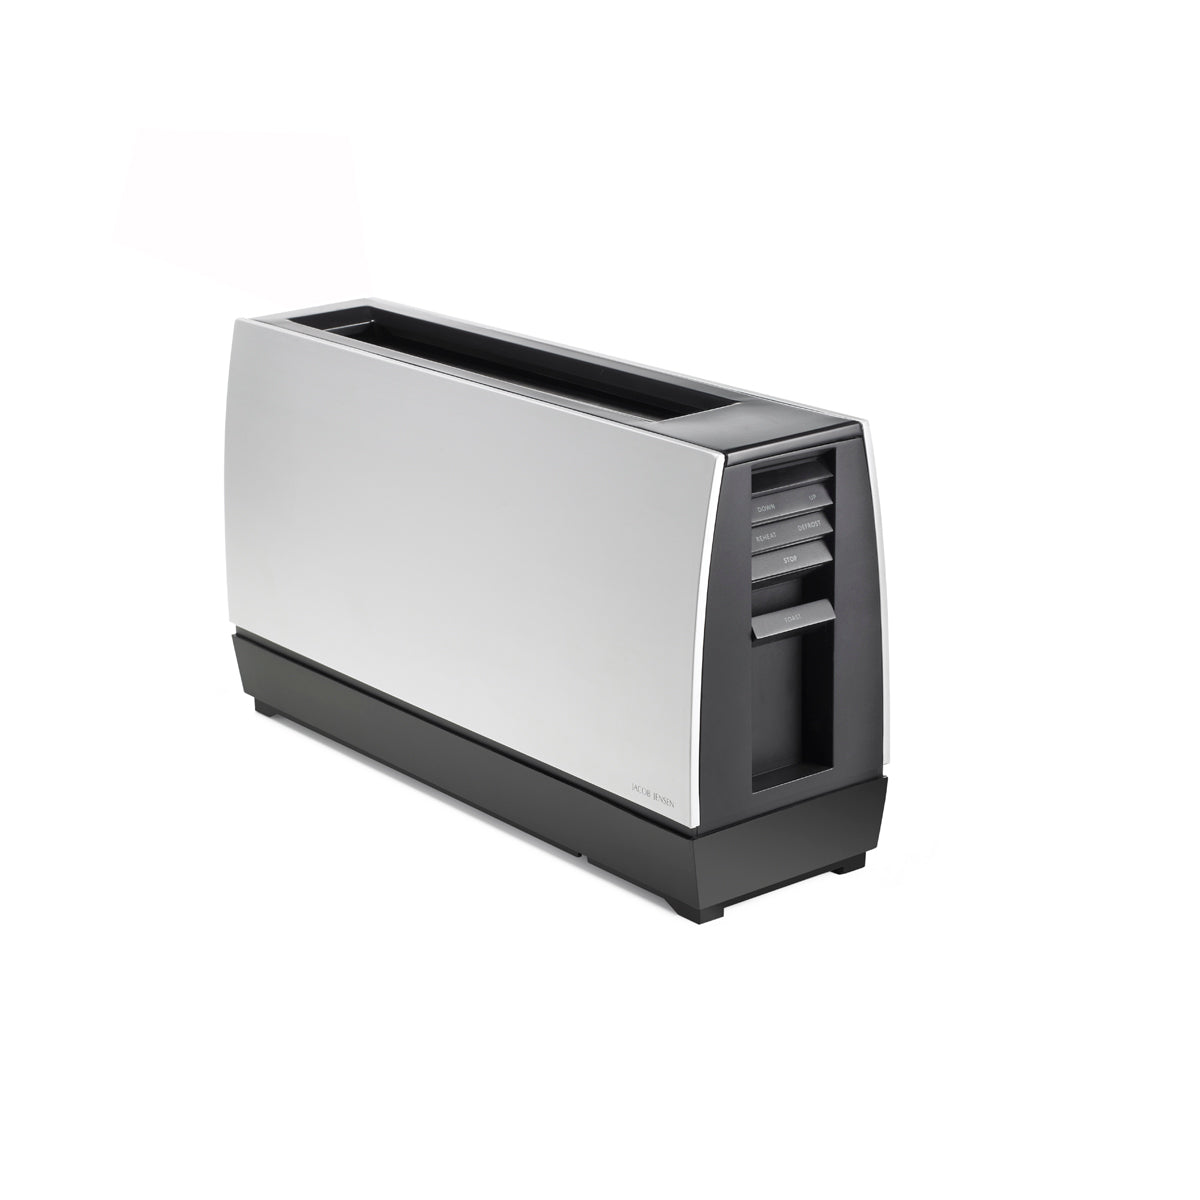 One Slot II Bread Toaster, Silver